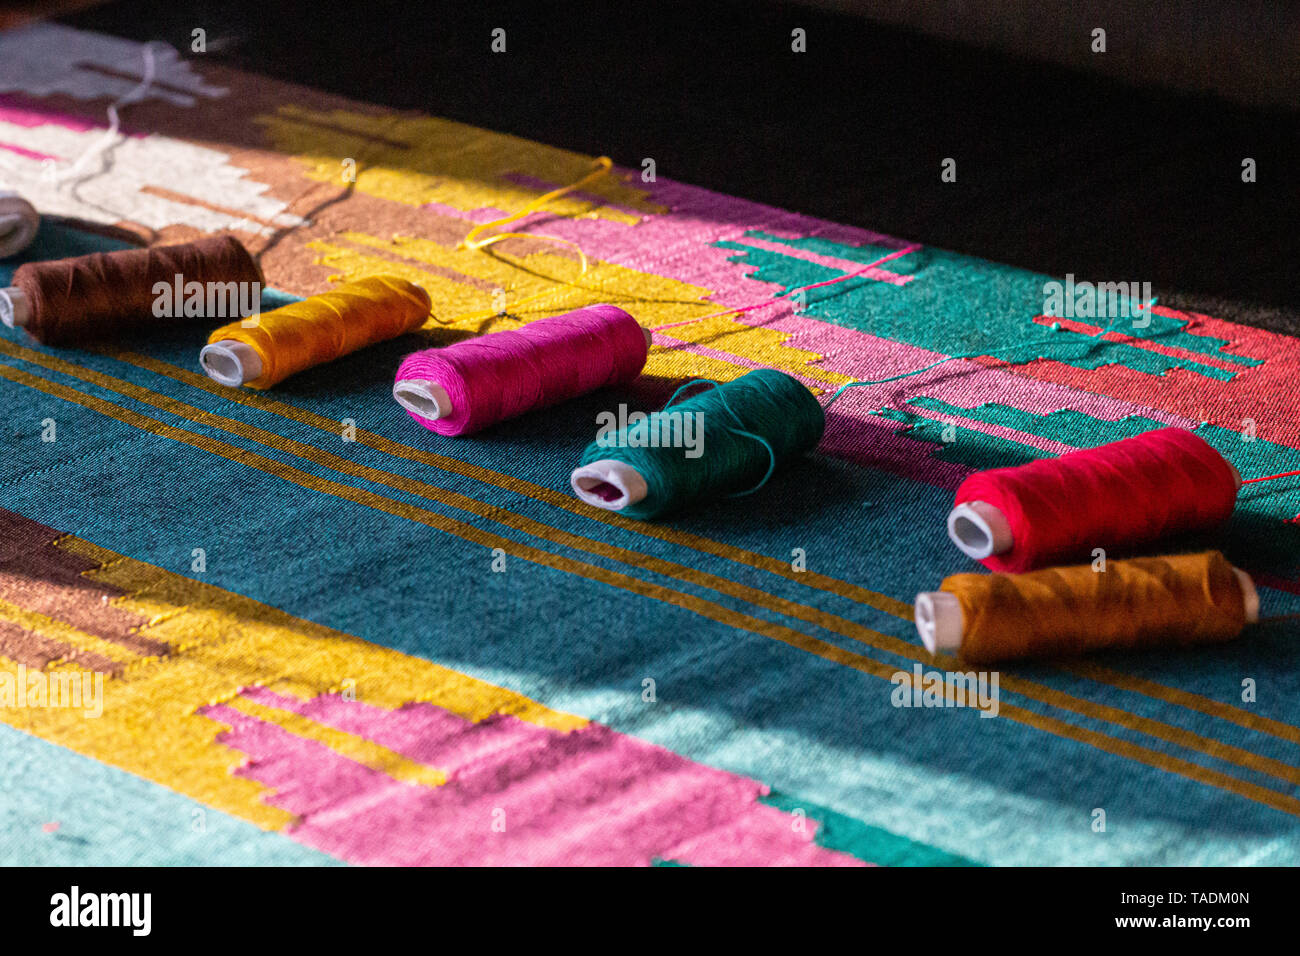 Pokhara traditional loom weaving in yellow, pink and green. - Stock Image